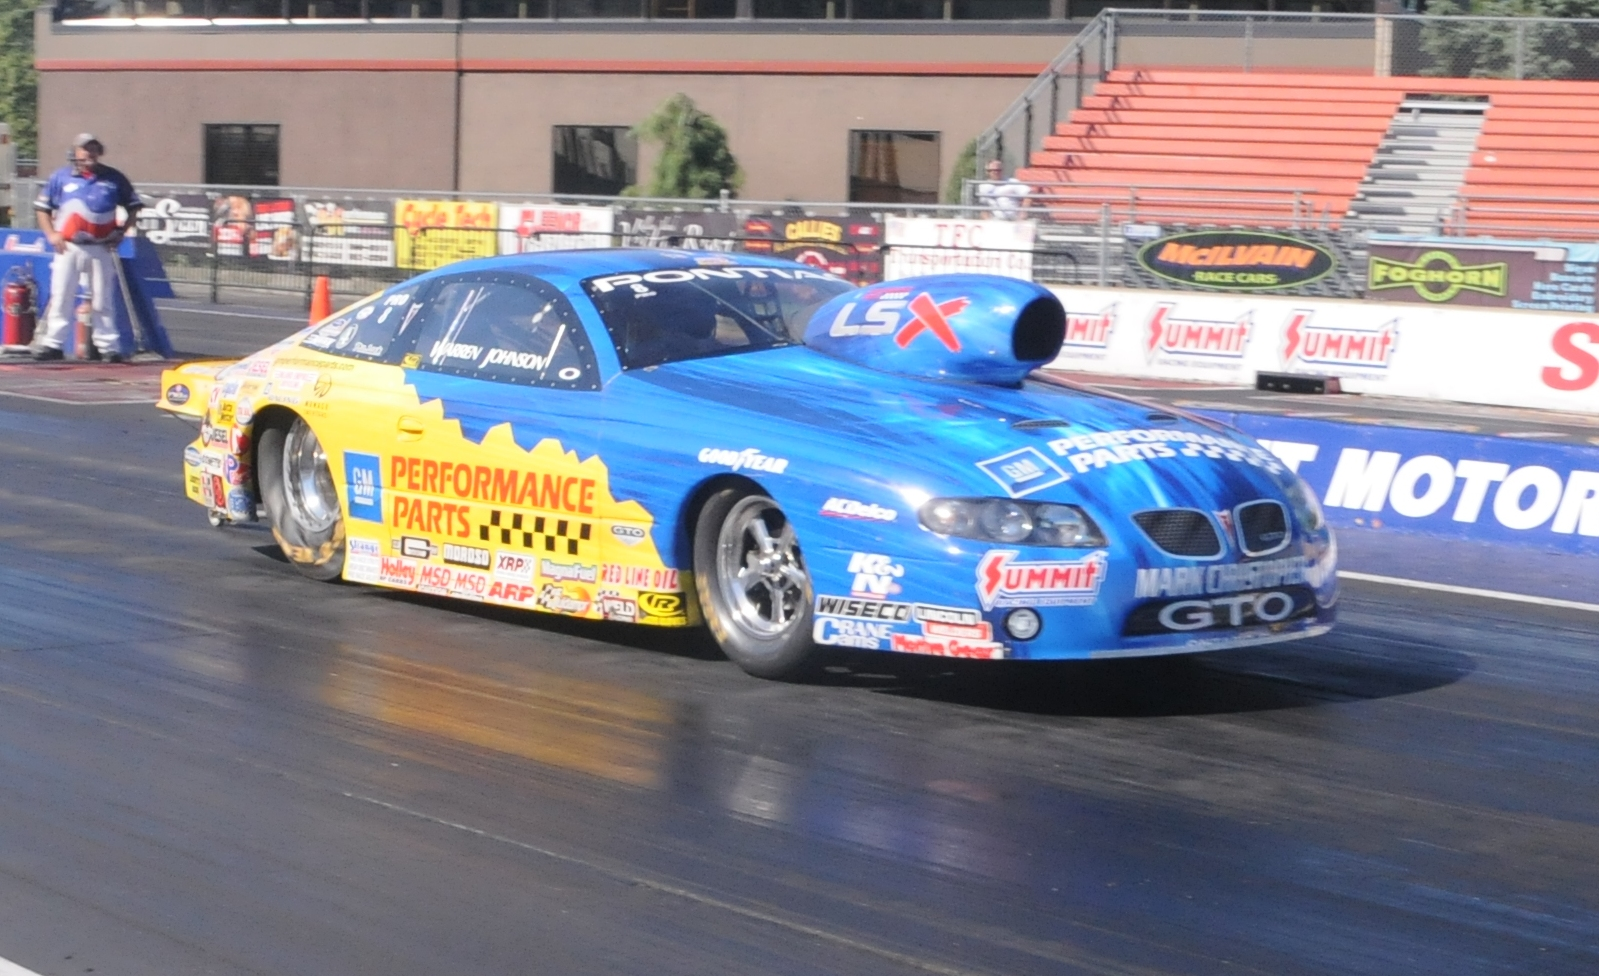 Joe Perkins and his '07 GTO pop on the TOP 10 NA at #3 – fastest ...